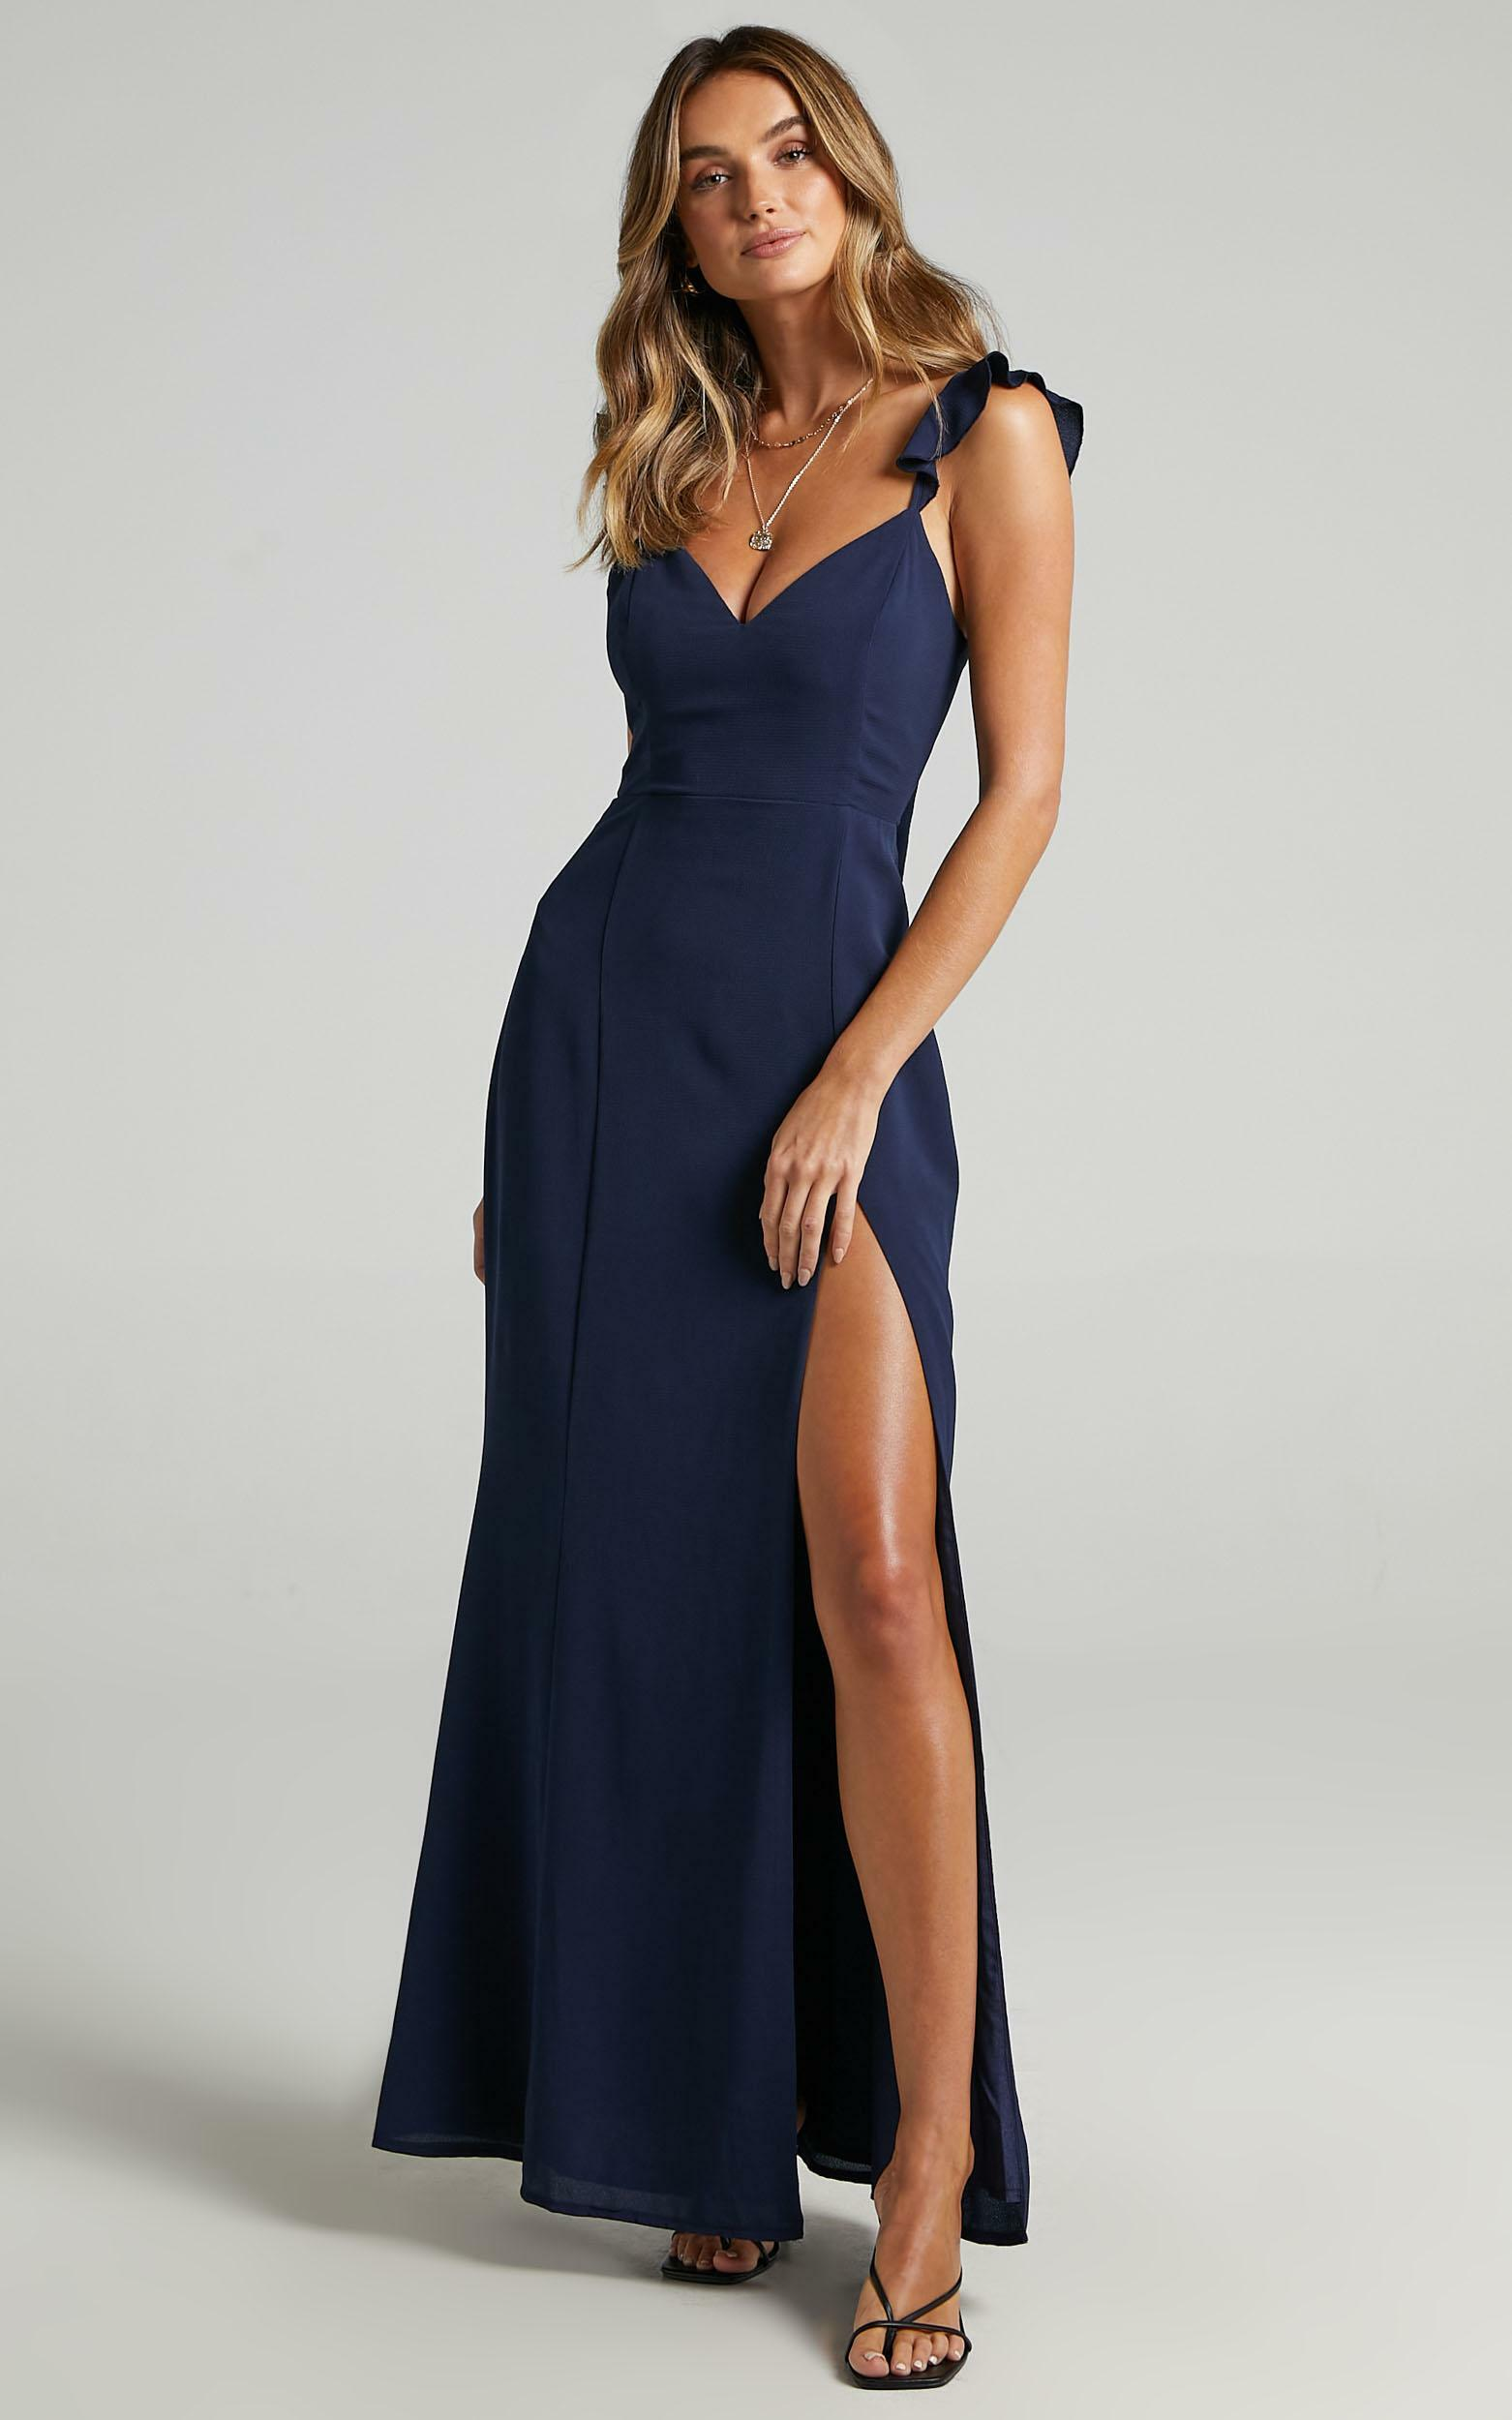 More Than This Ruffle Strap Maxi Dress in Navy - 04, NVY5, hi-res image number null